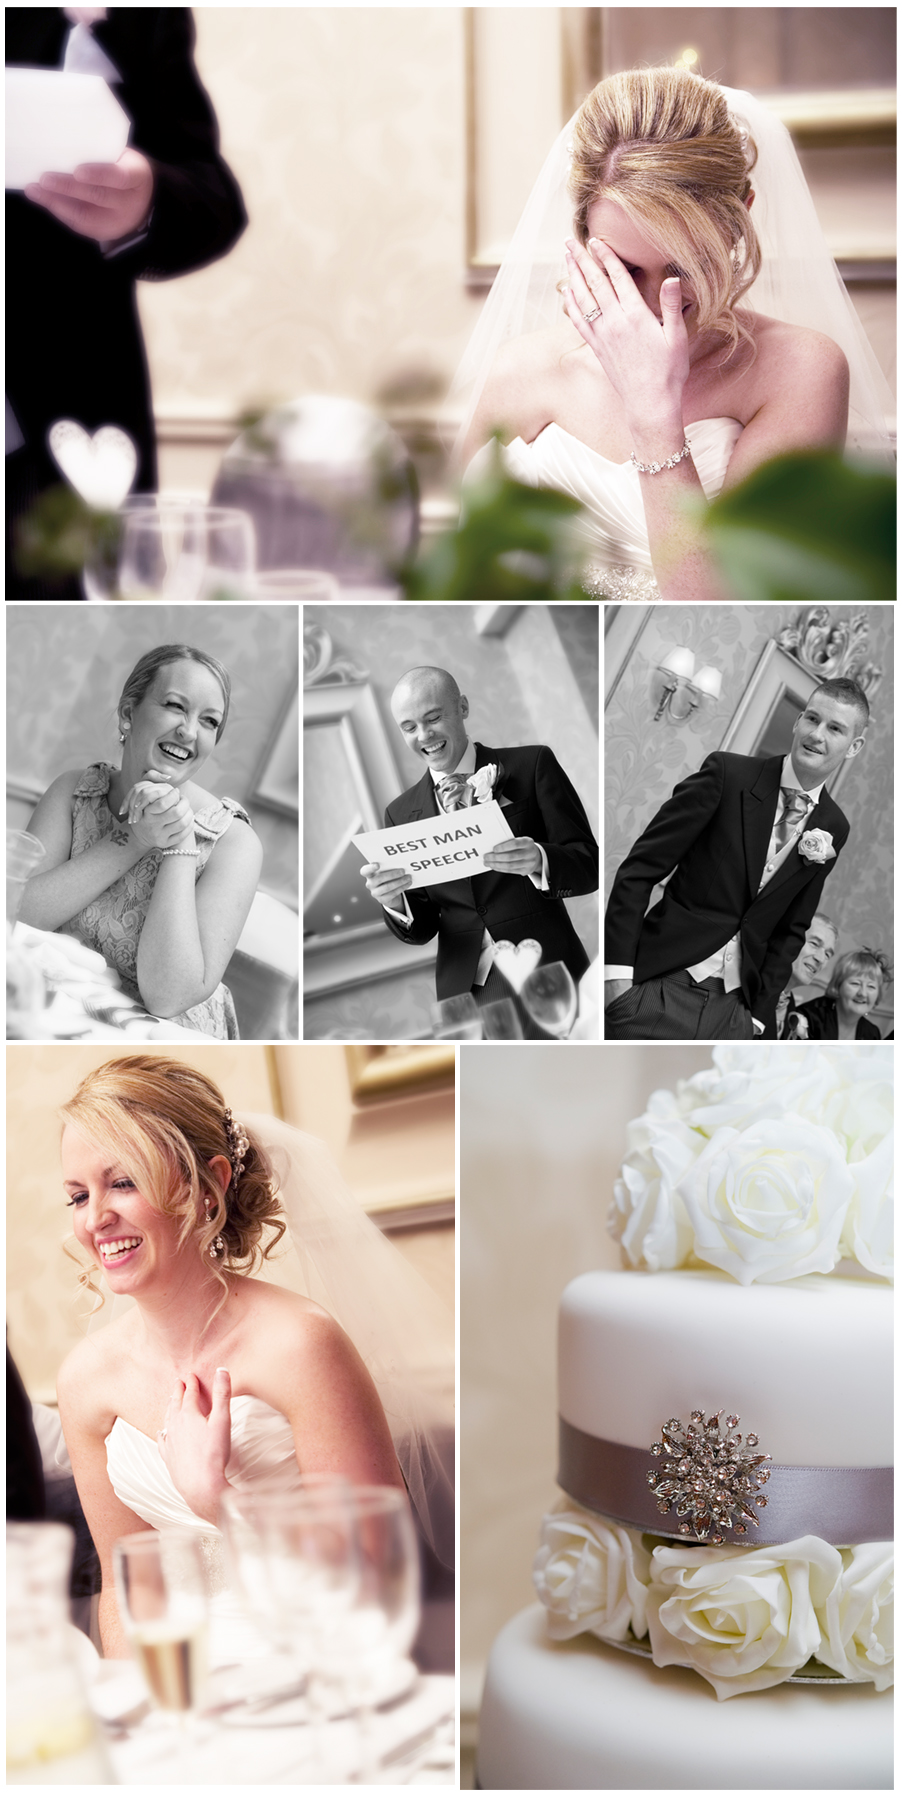 The Speeches - Wedding Photography in Cheshire